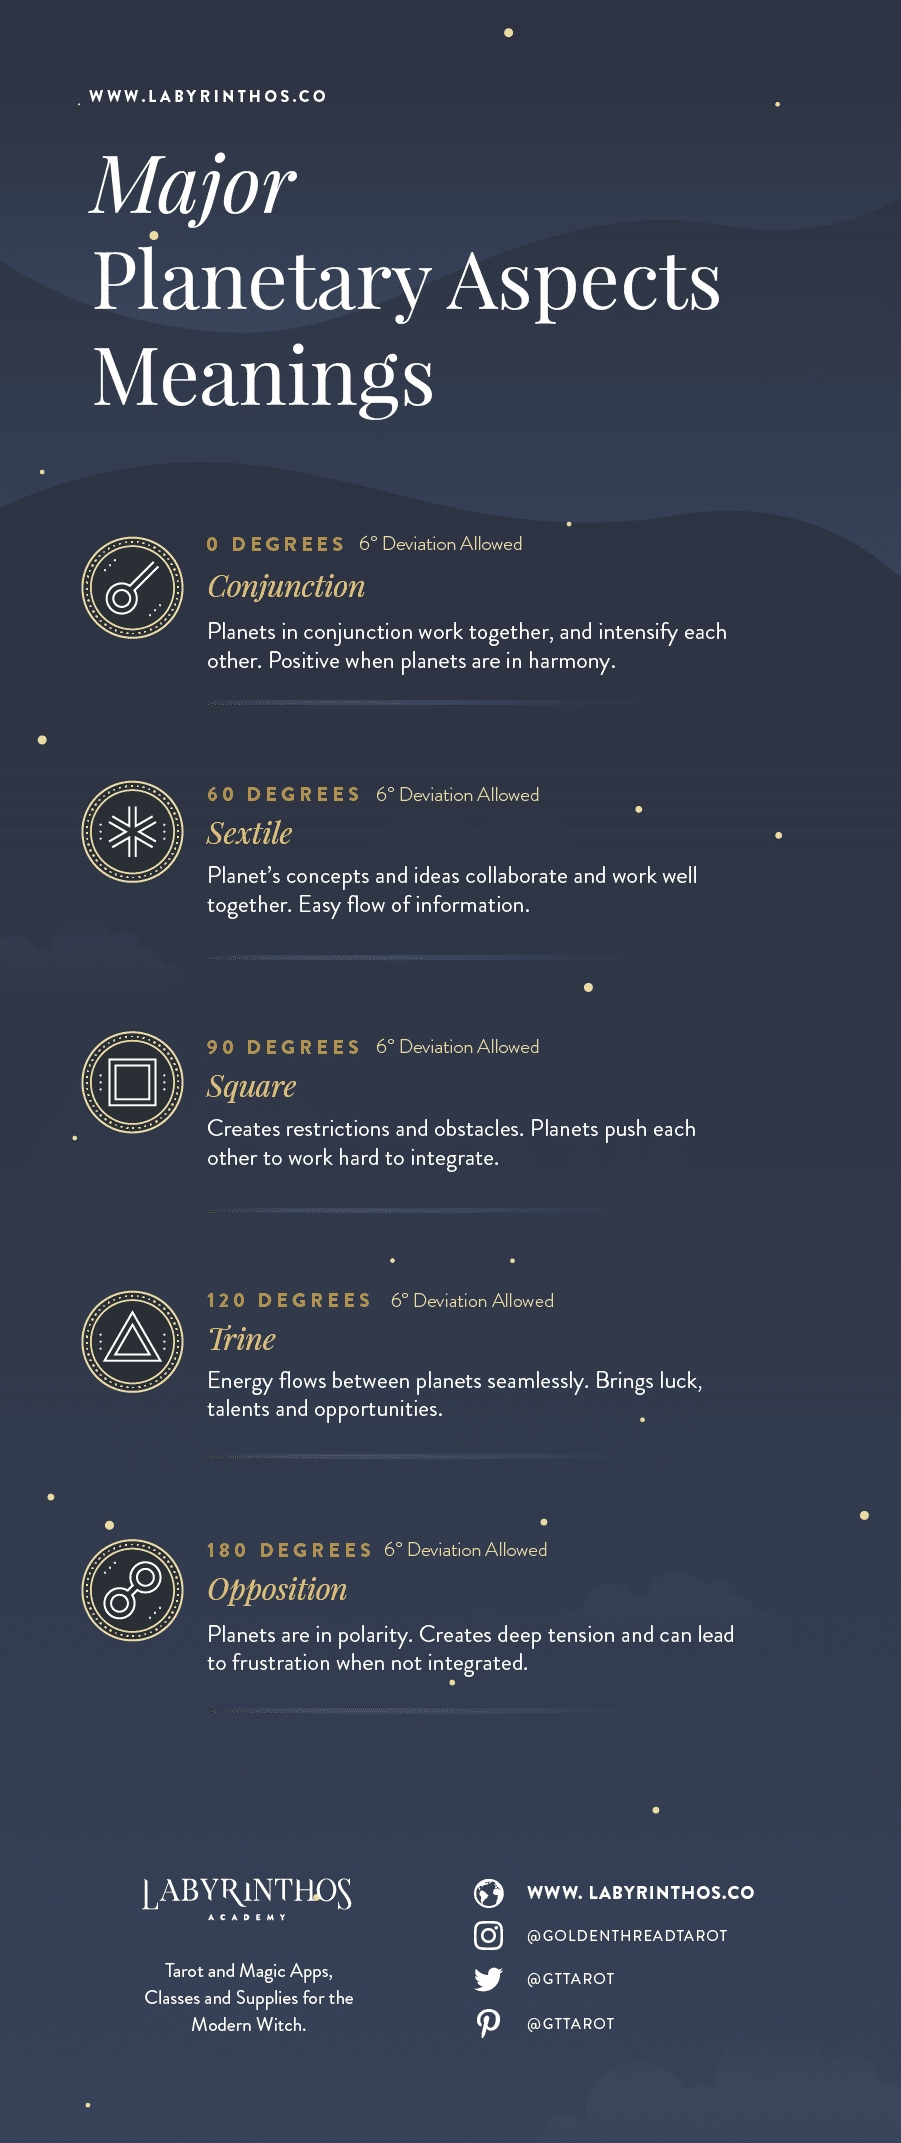 Major Planetary Aspect Meanings - Relationship Between